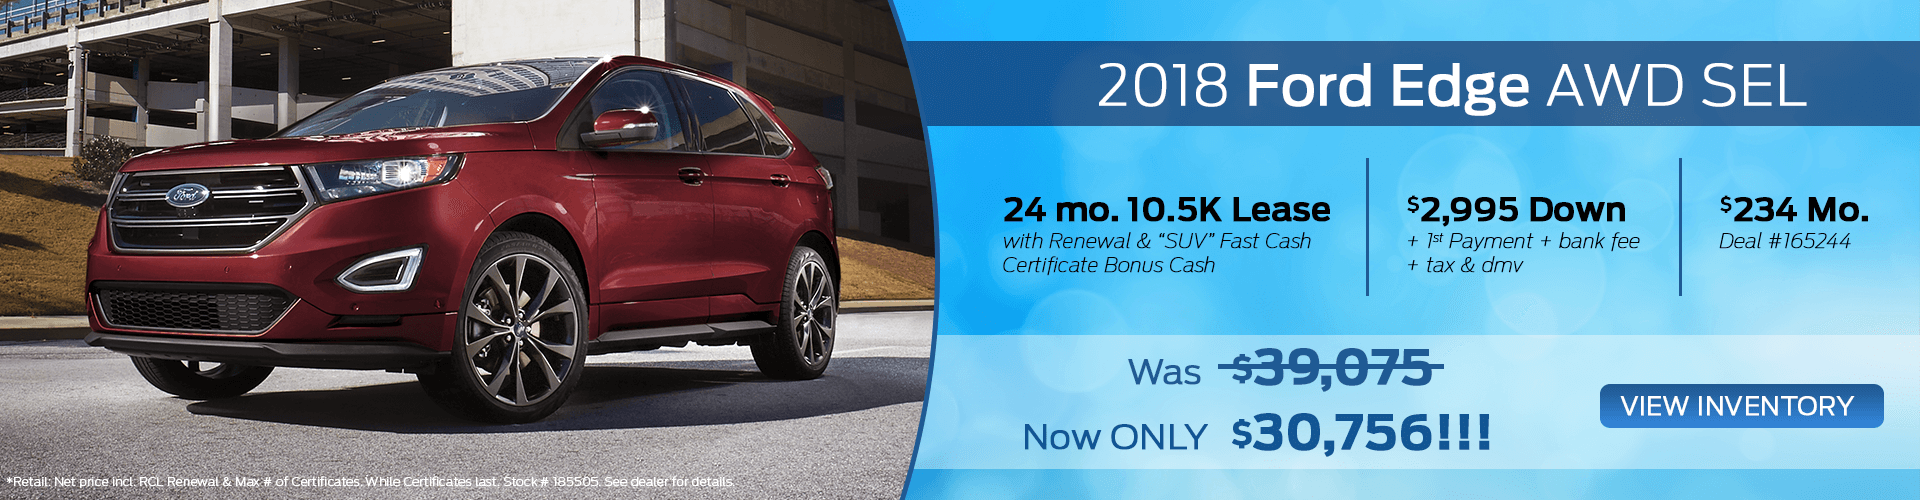 2018 Ford Edge AWD SEL For Sale On Long Island NY